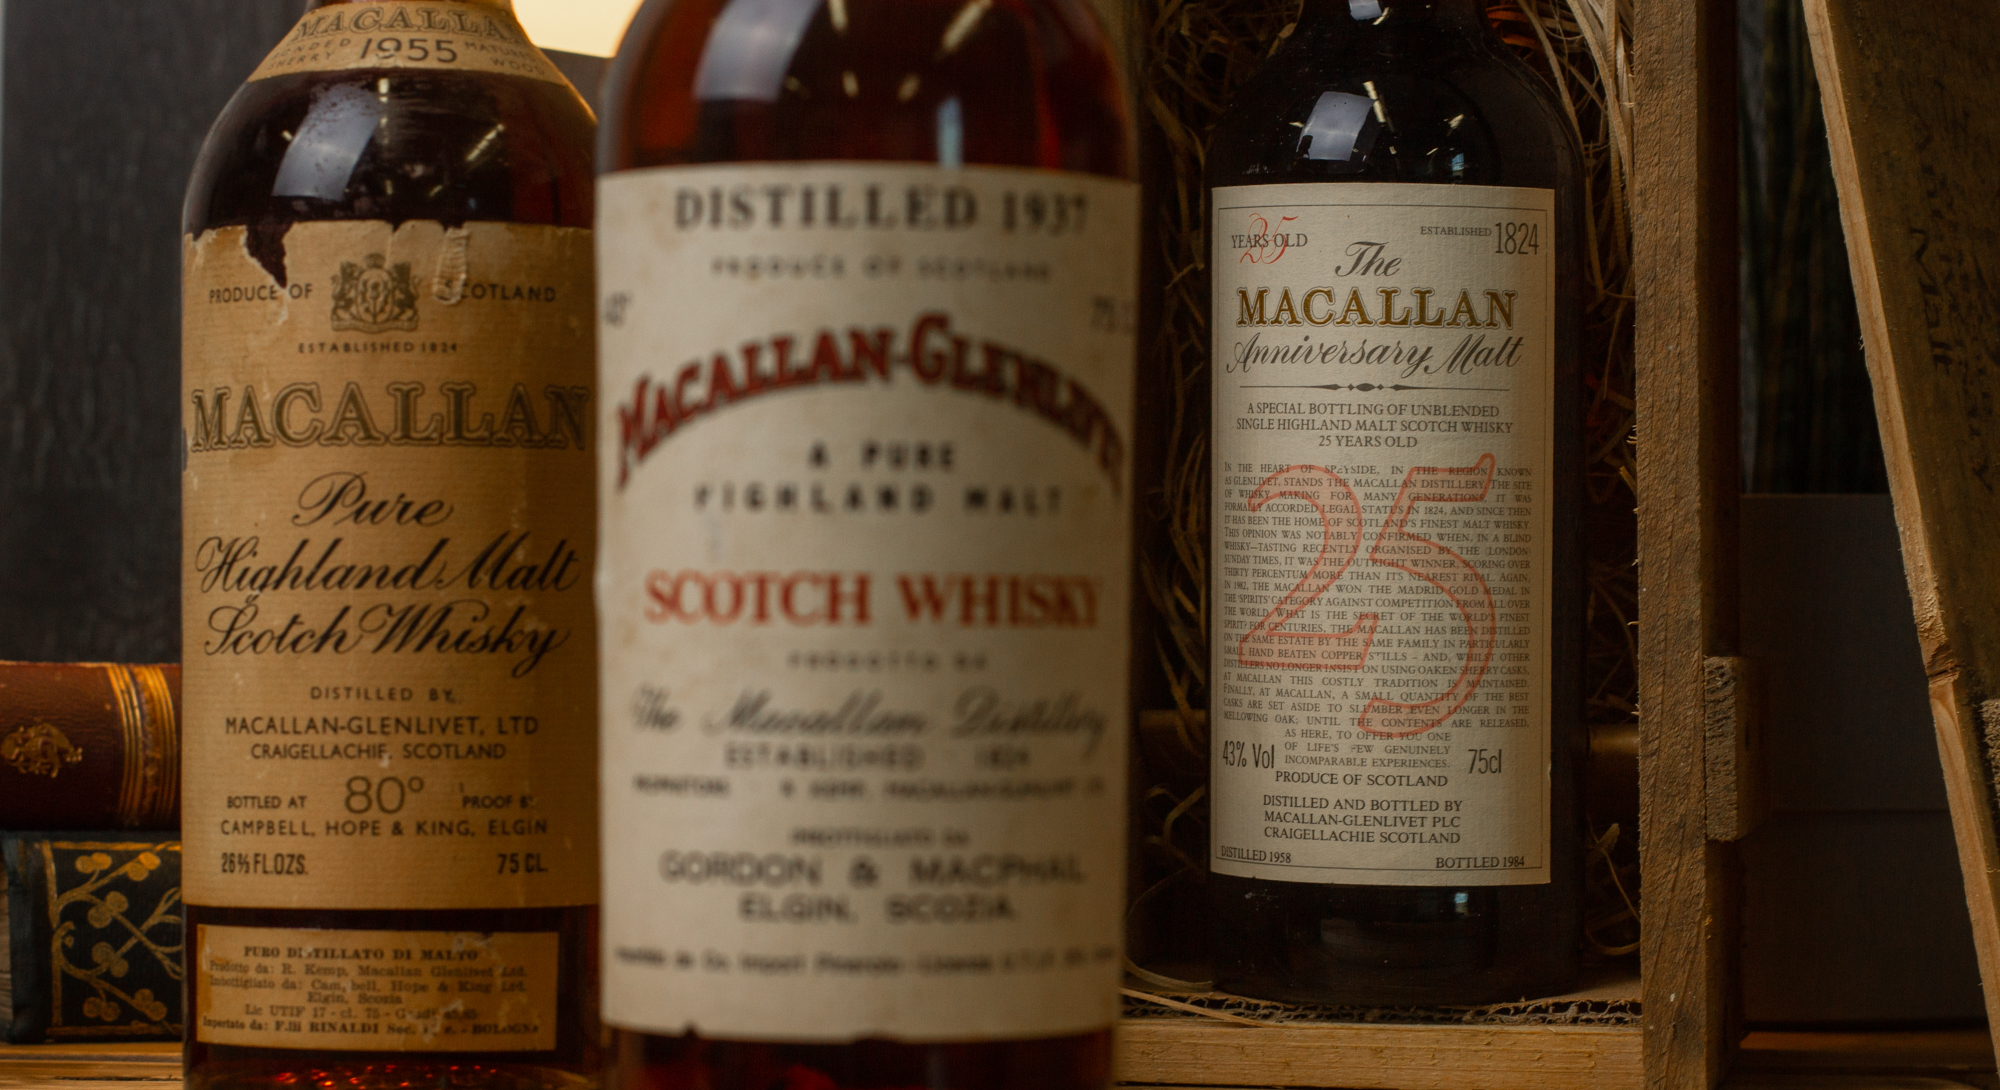 Macallan is one of the most expensive and collectible whisky brands in the world.